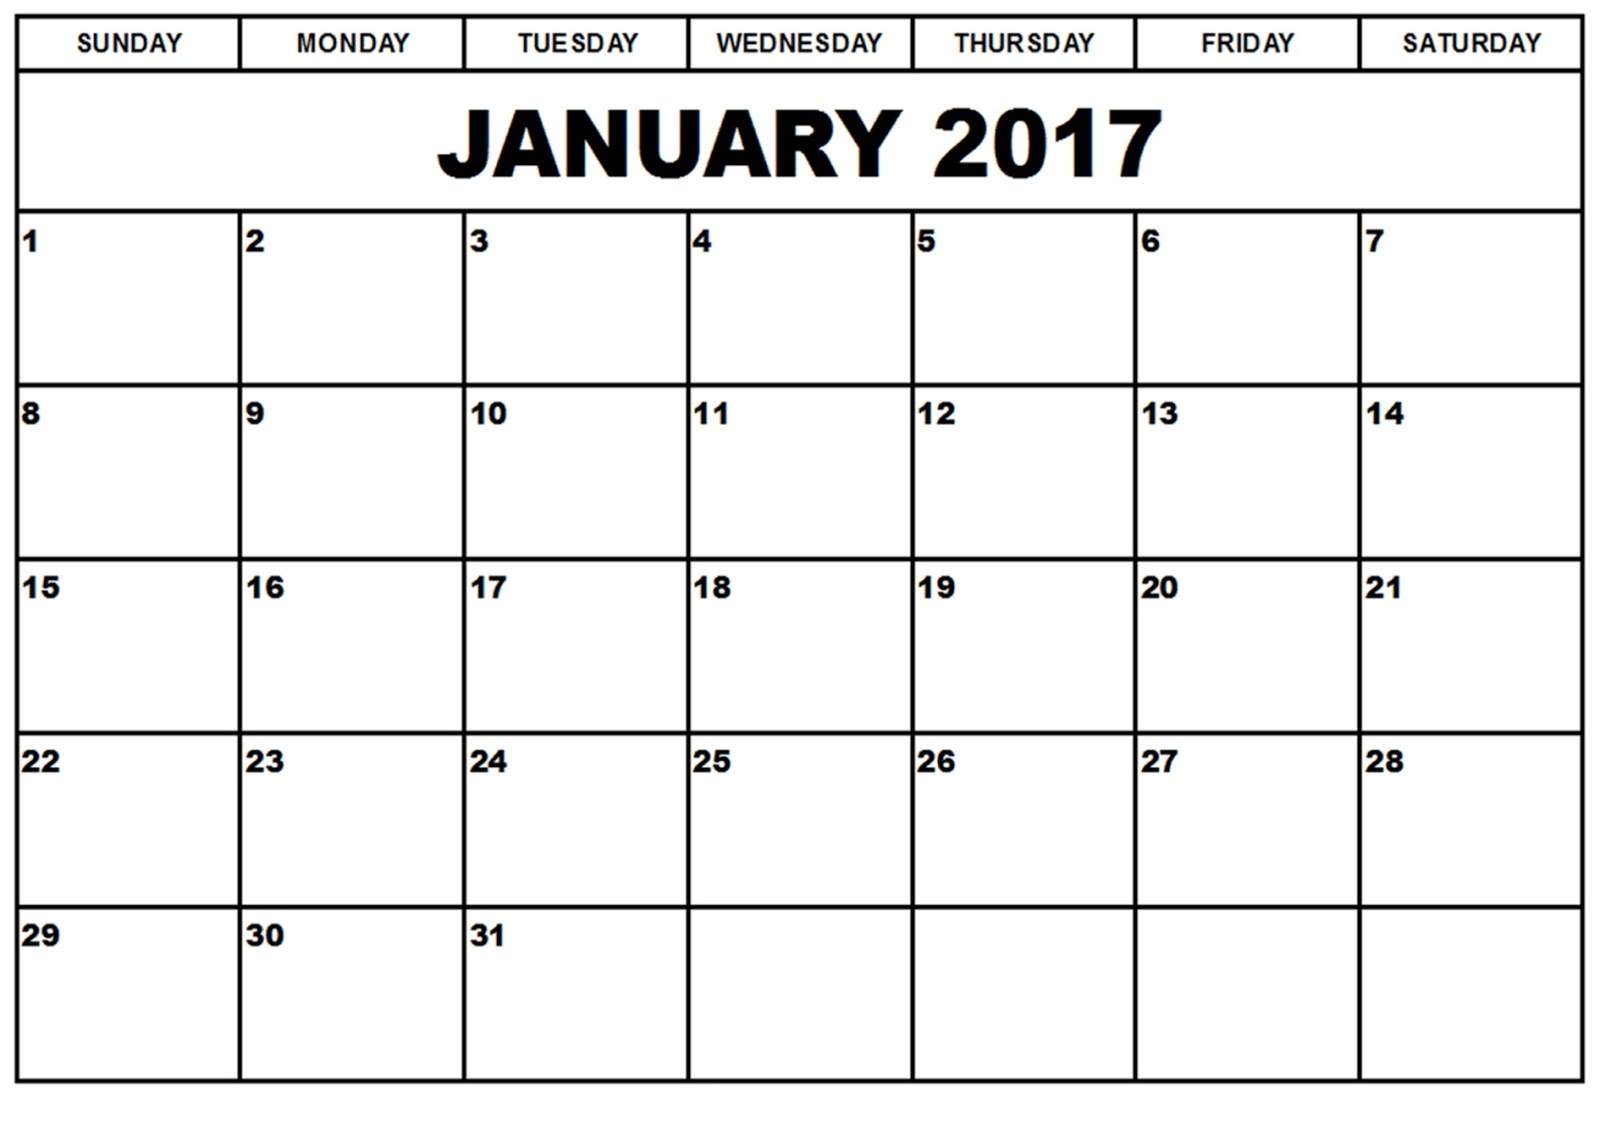 January 2017 Monthly Calendar Printable Templates - Printable ...